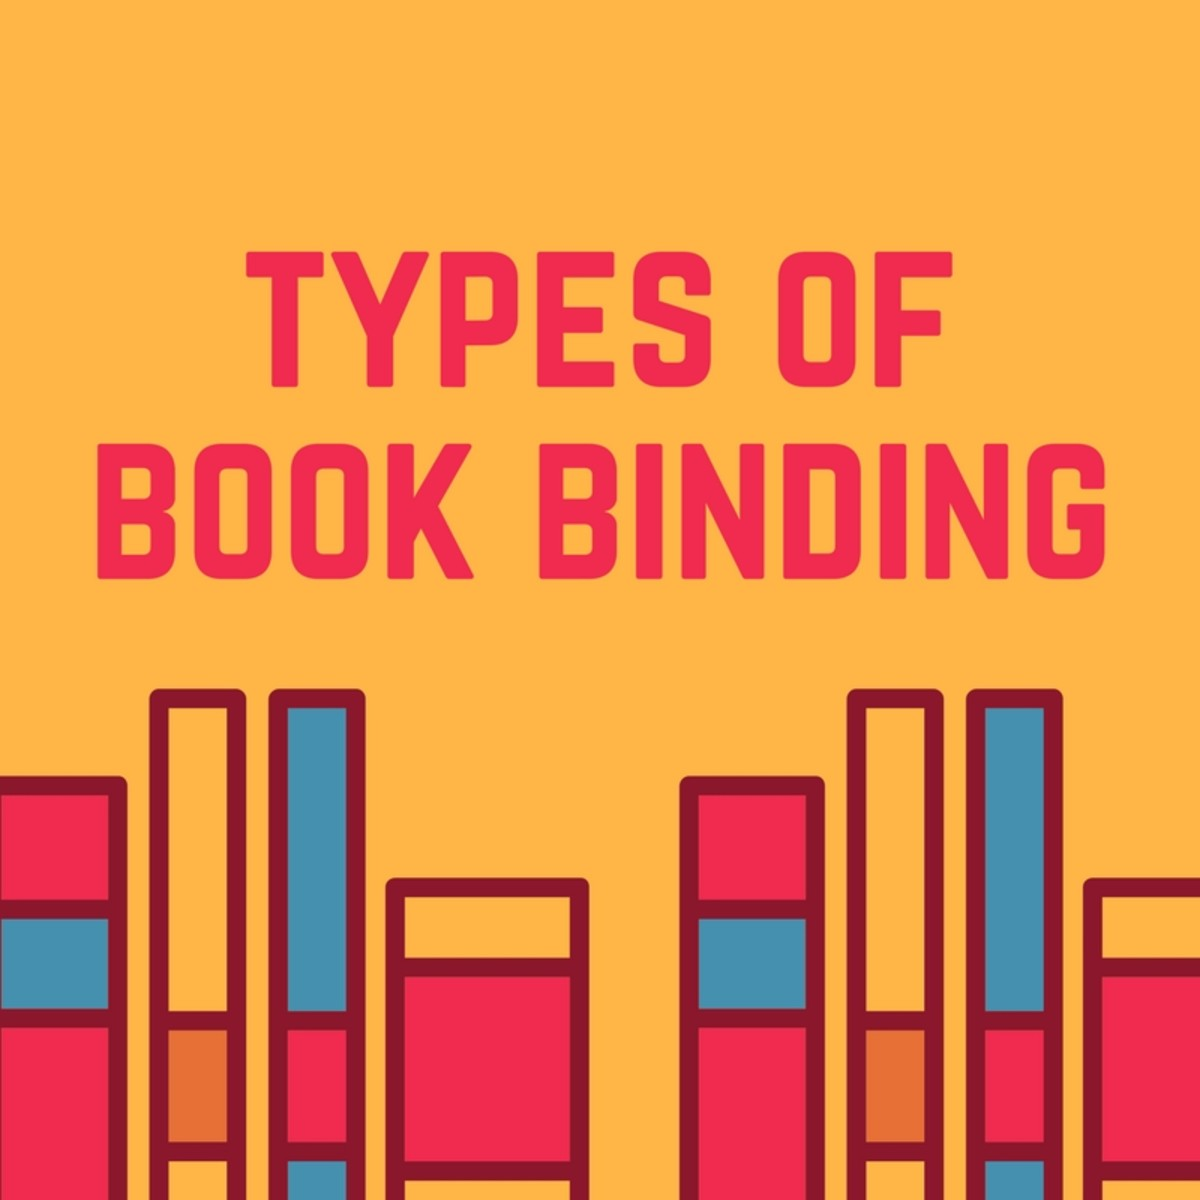 Types of book binding owlcation in solutioingenieria